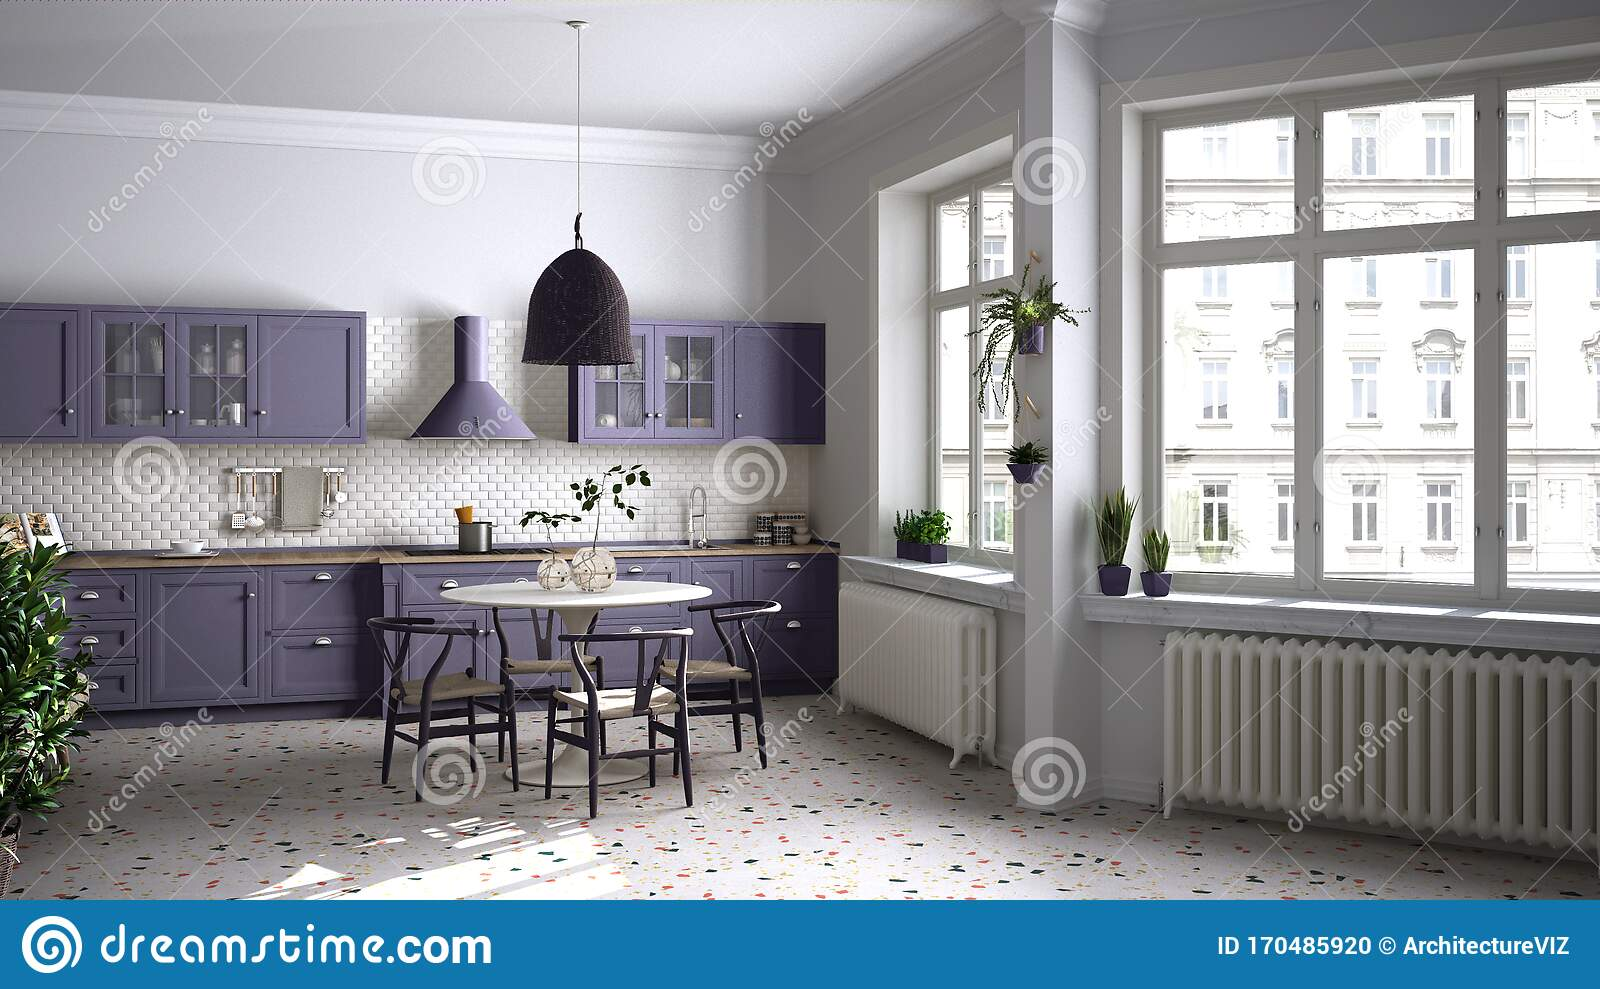 Retro White And Purple Vintage Kitchen With Terrazzo Marble Floor Panoramic Windows Dining Room Round Table With Wooden Chairs Stock Illustration Illustration Of Style Eclectic 170485920